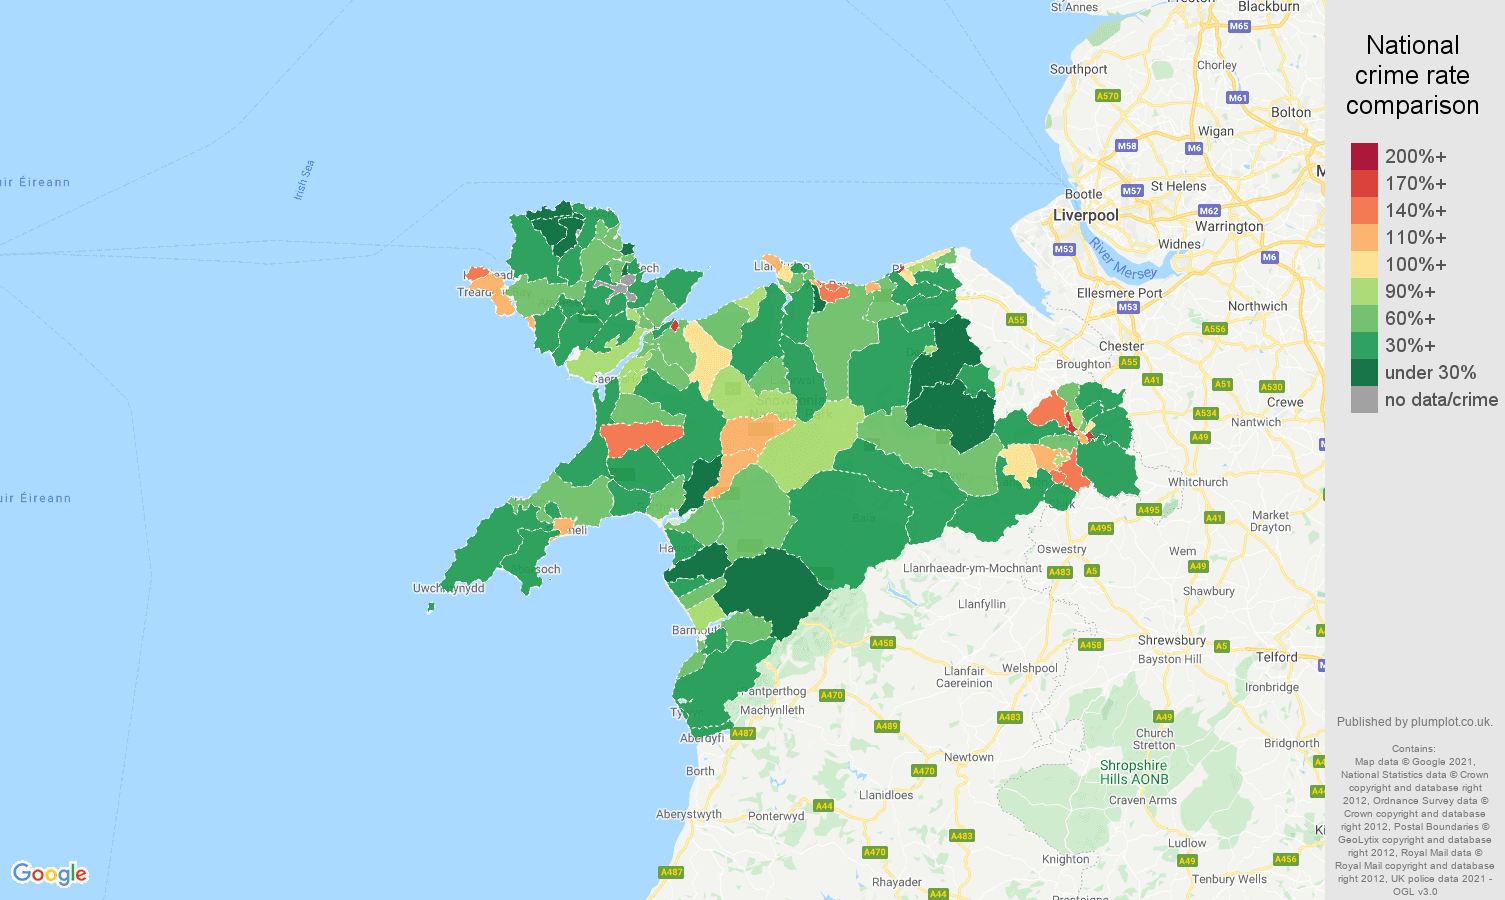 Llandudno antisocial behaviour crime rate comparison map